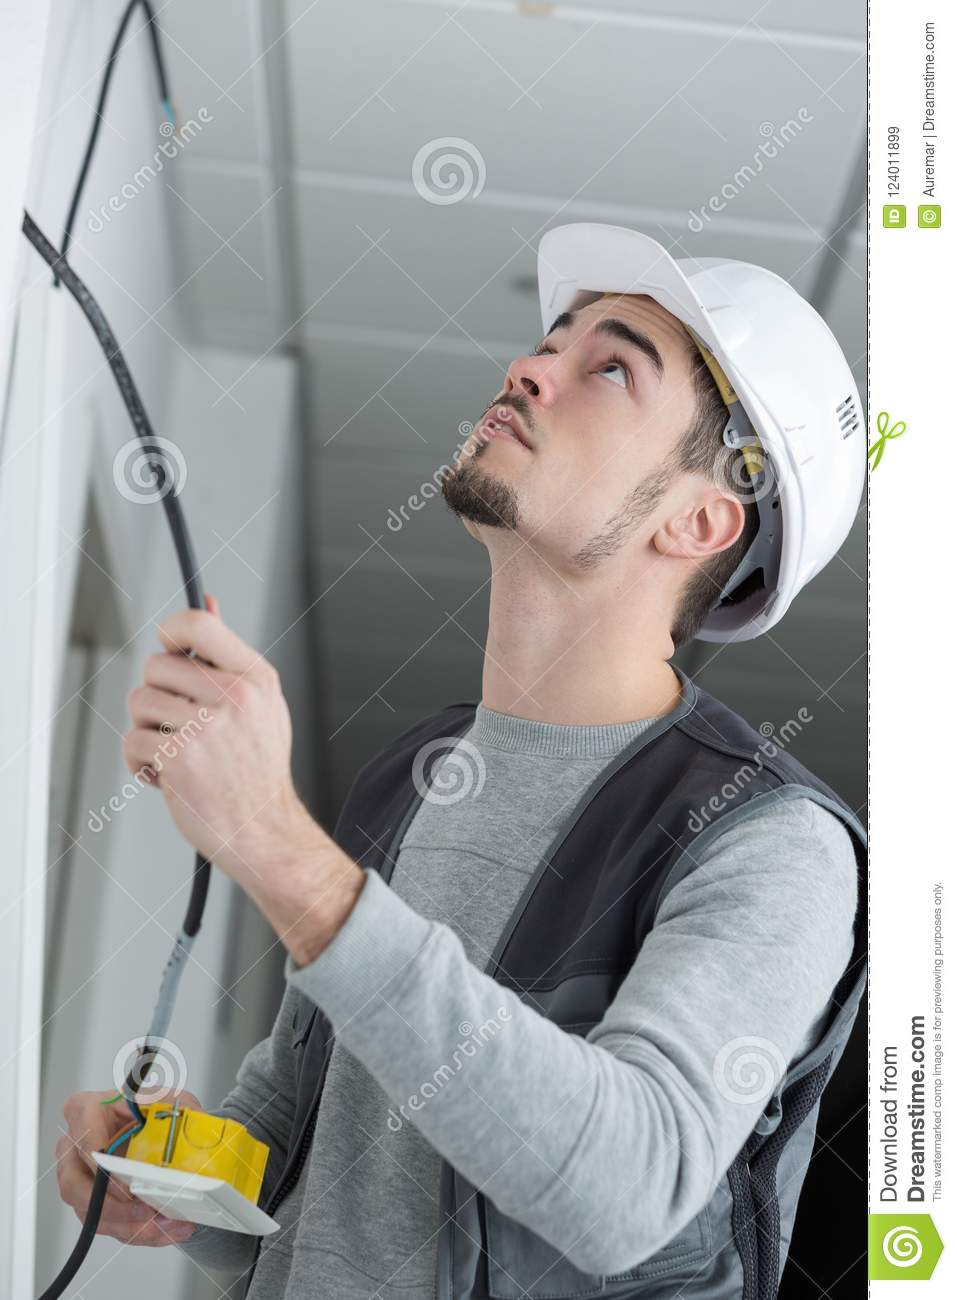 Marvelous Electrician Rewiring Light Switch In Office Stock Image Image Of Wiring Cloud Hisonuggs Outletorg